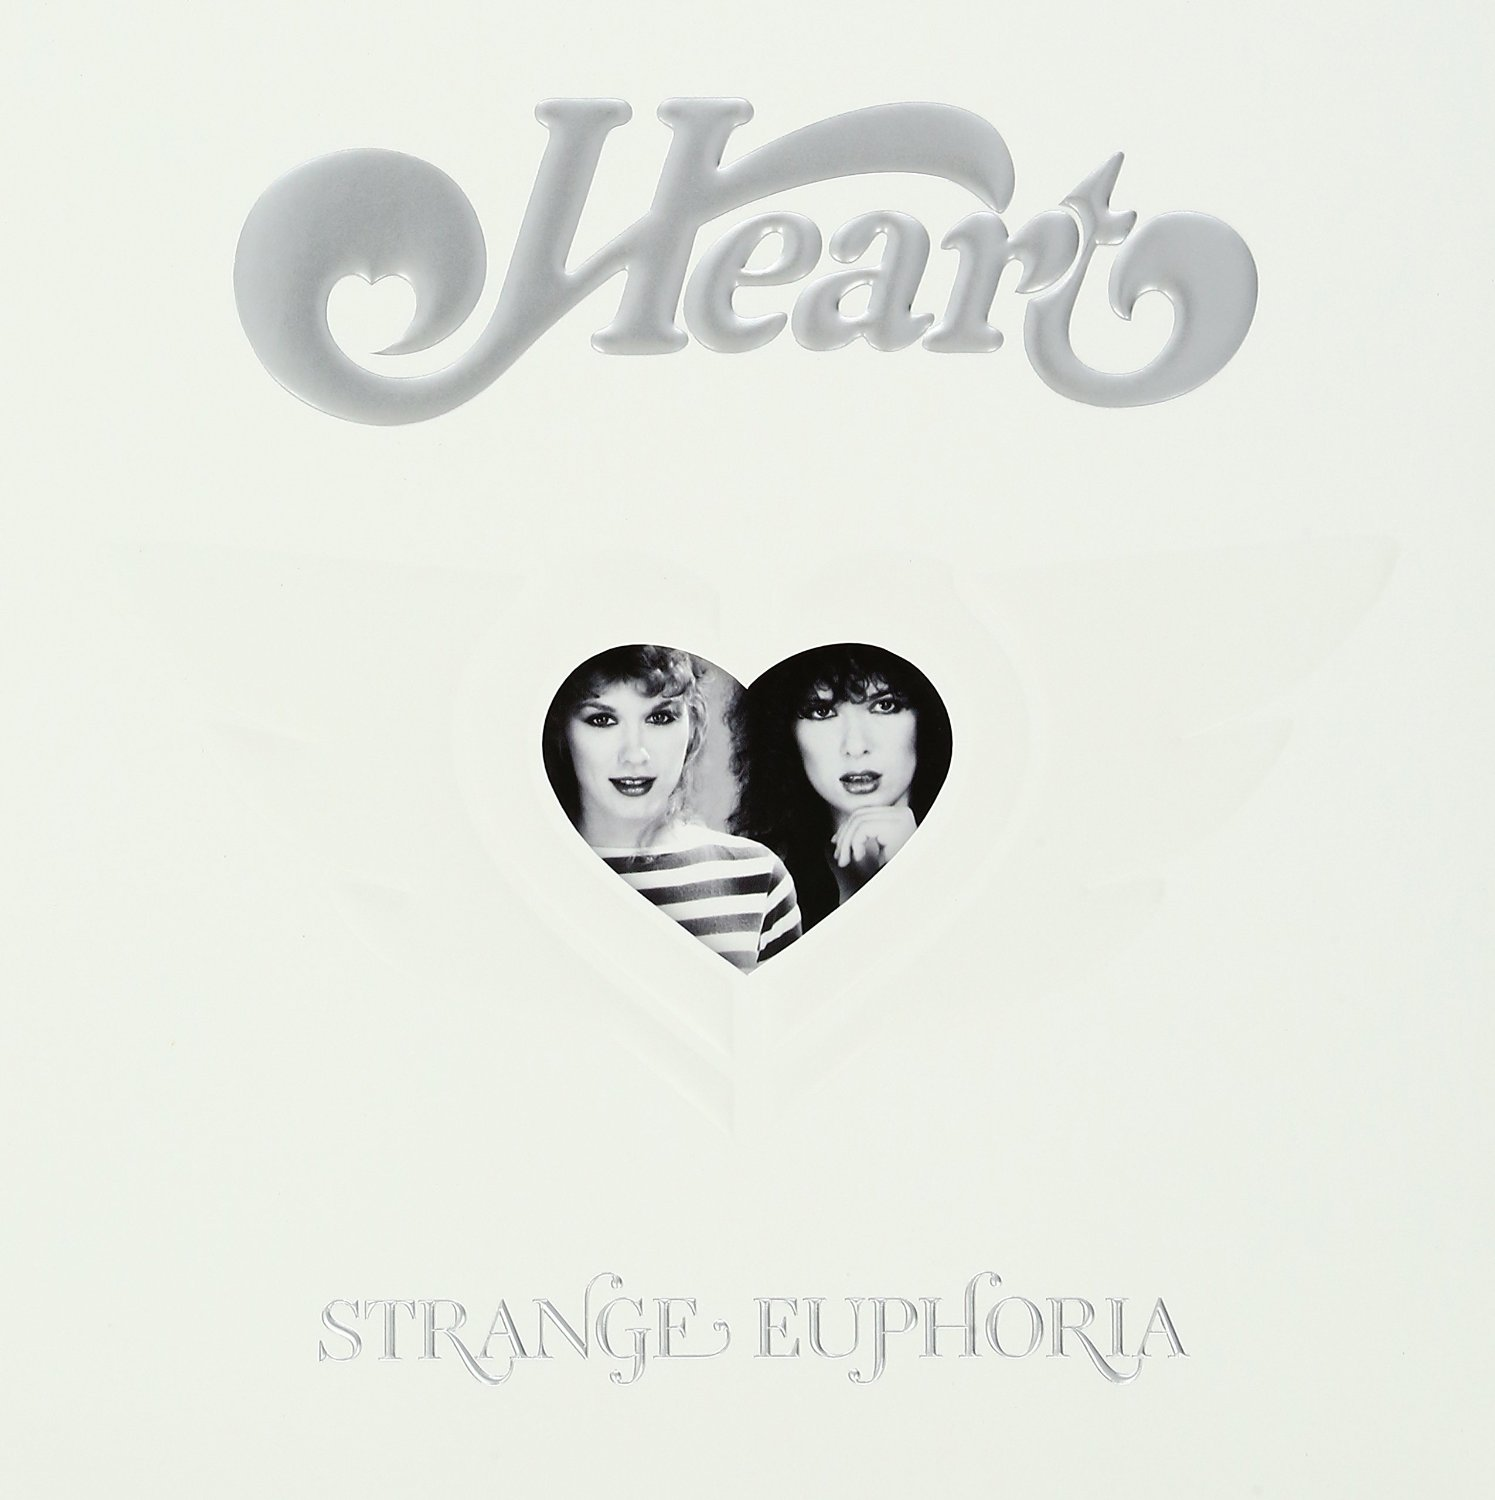 Over Misty Mountains Cold Flute Heart Strangeeuphoria Boxset Cover